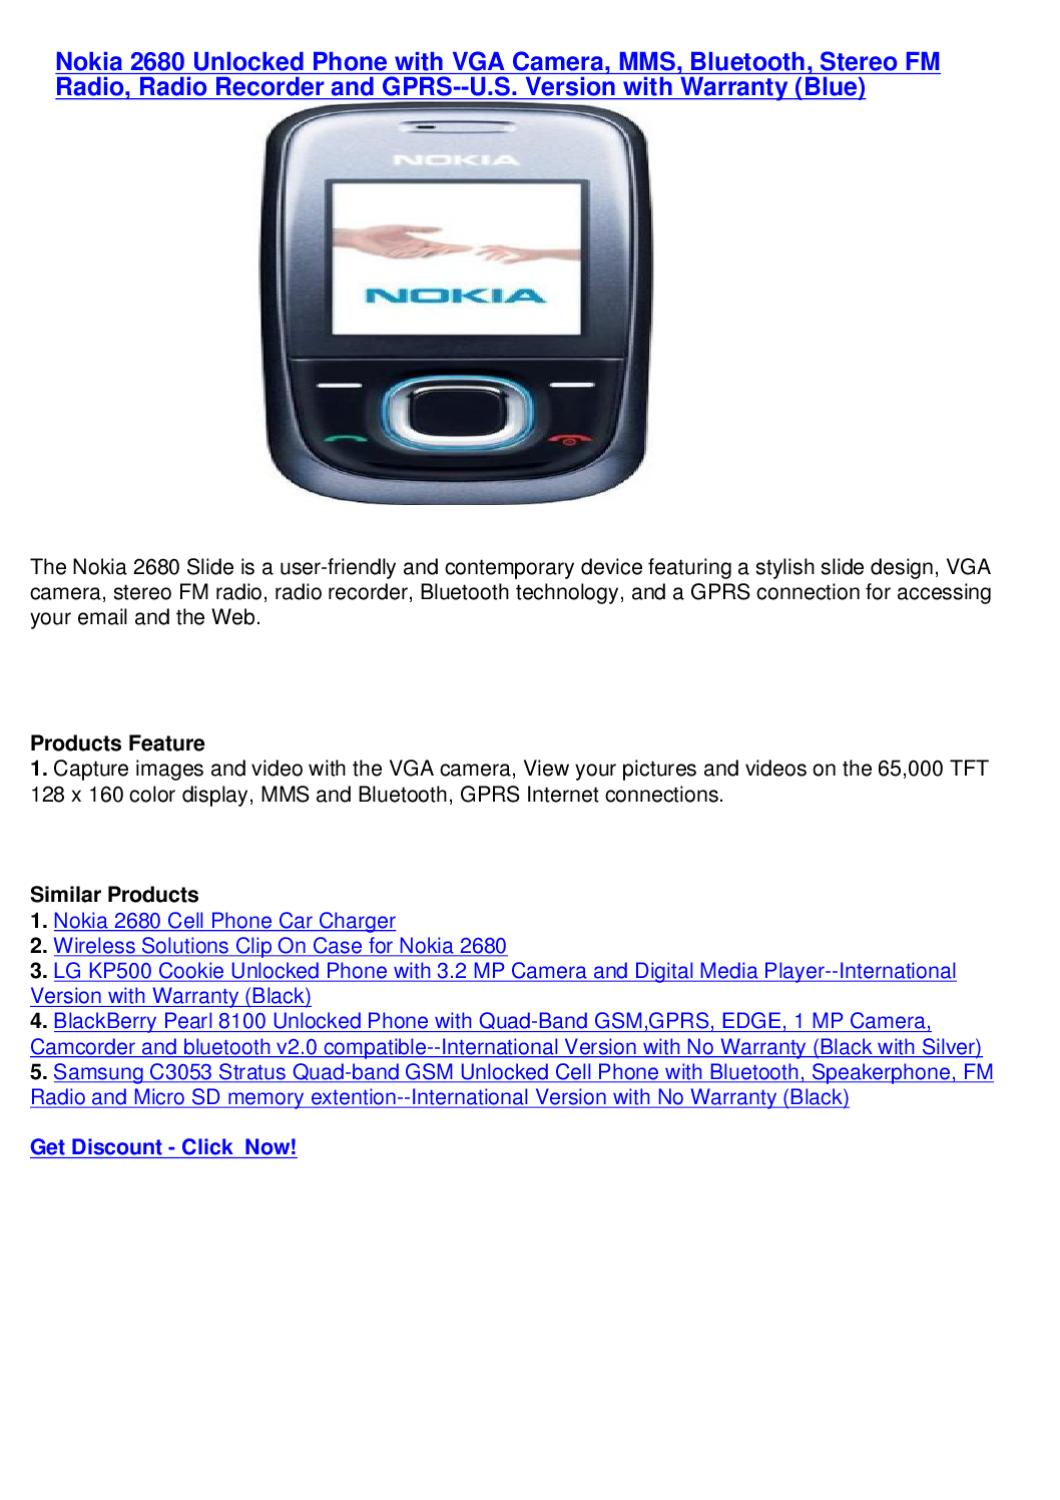 Nokia 2680 Unlocked Phone With Vga Camera Mms Bluetooth Stereo Fm Technology Radio Recorder And Gprs By Mixsel Seller Issuu